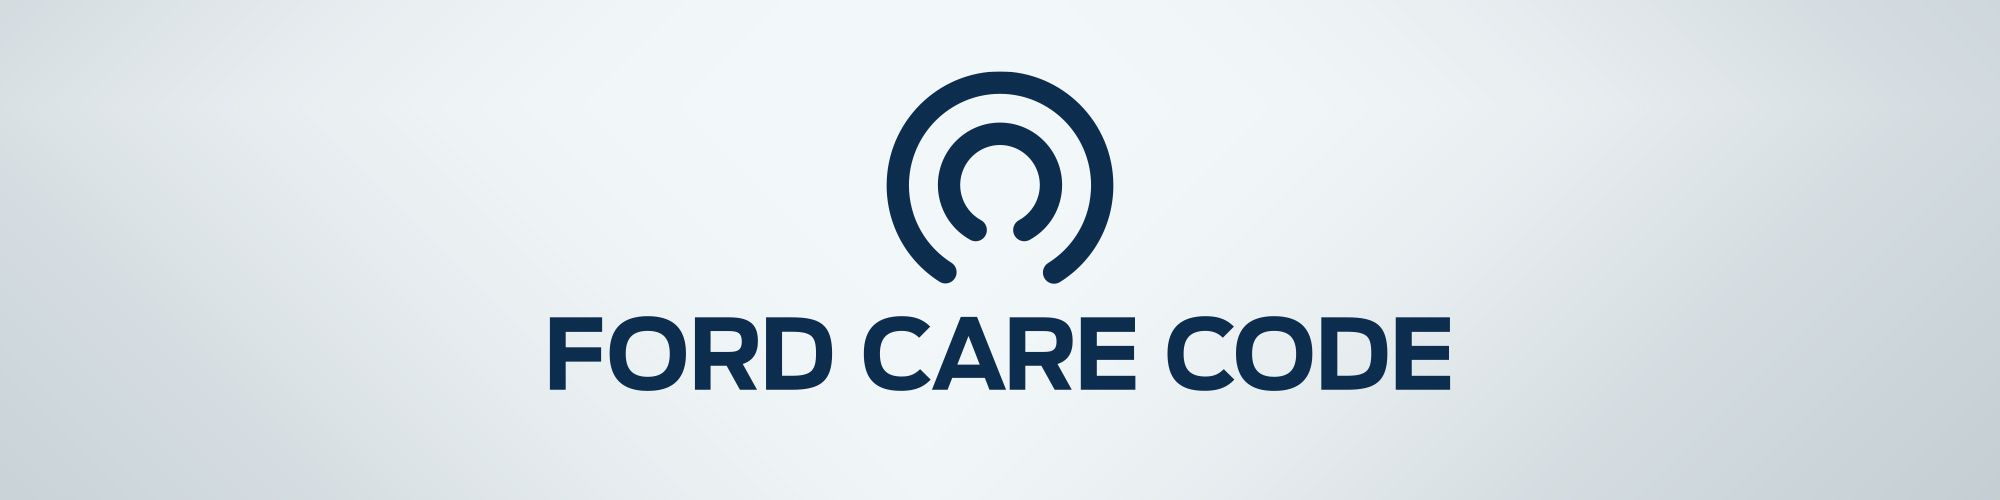 Ford Care Code - Covid-19 Safety